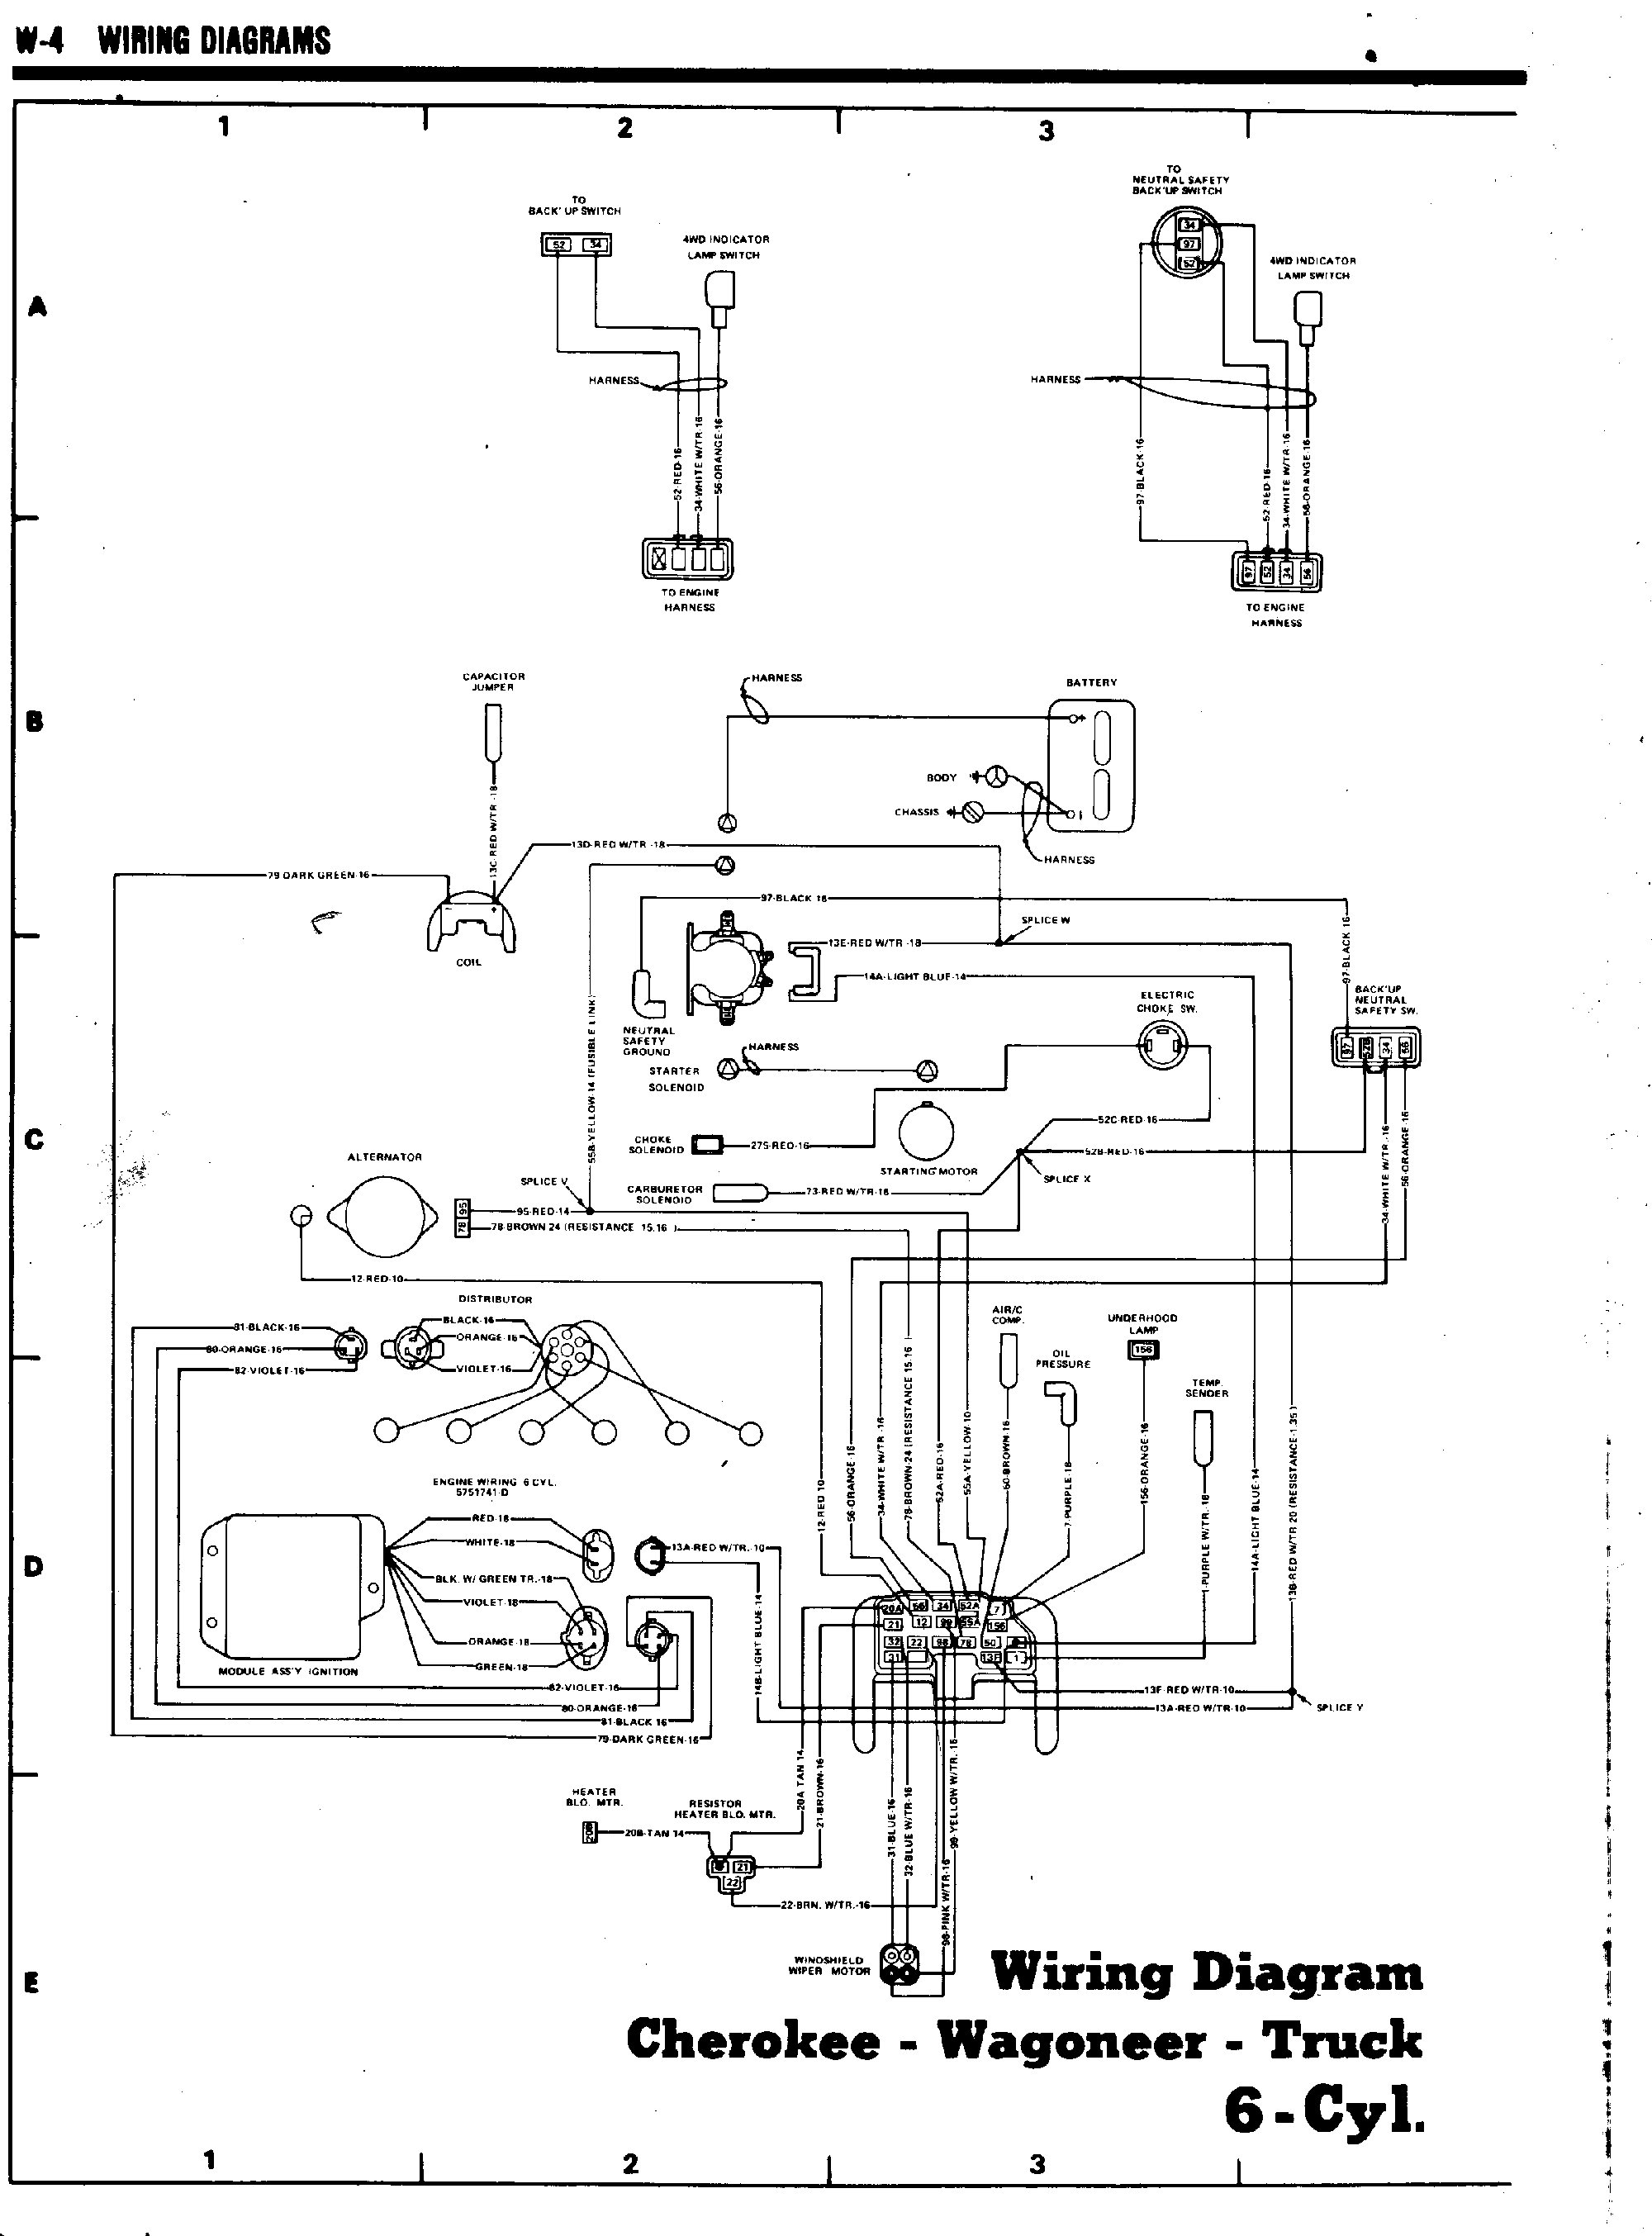 Jeep Wagoneer Dash Wiring Diagram - 11.16.depo-aqua.de • on 01 wrangler wiring diagram, 01 mustang wiring diagram, 01 dakota wiring diagram,